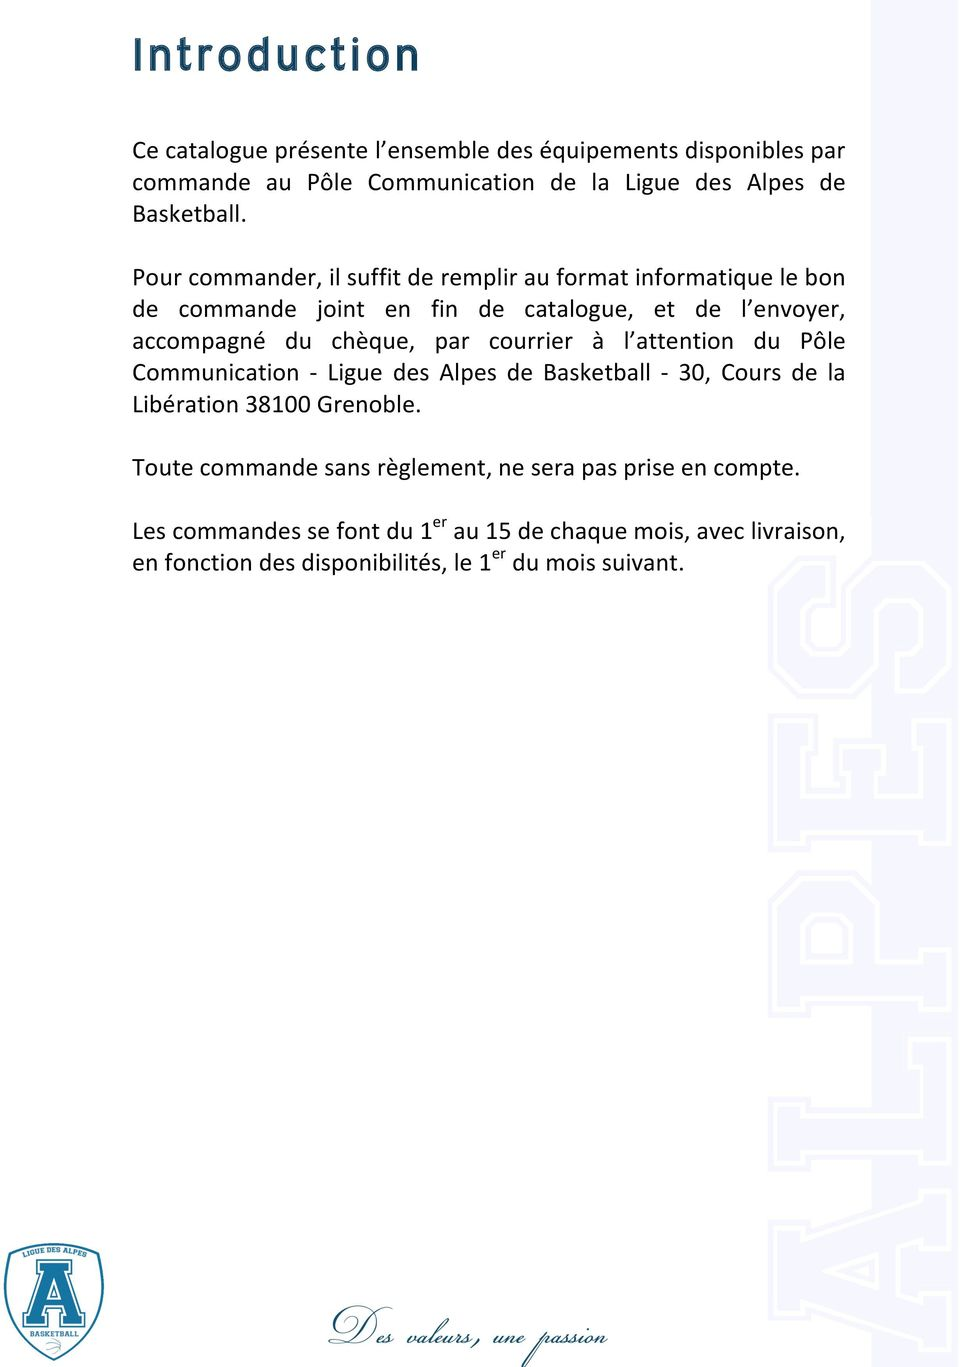 courrier à l attention du Pôle Communication - Ligue des Alpes de Basketball - 30, Cours de la Libération 38100 Grenoble.